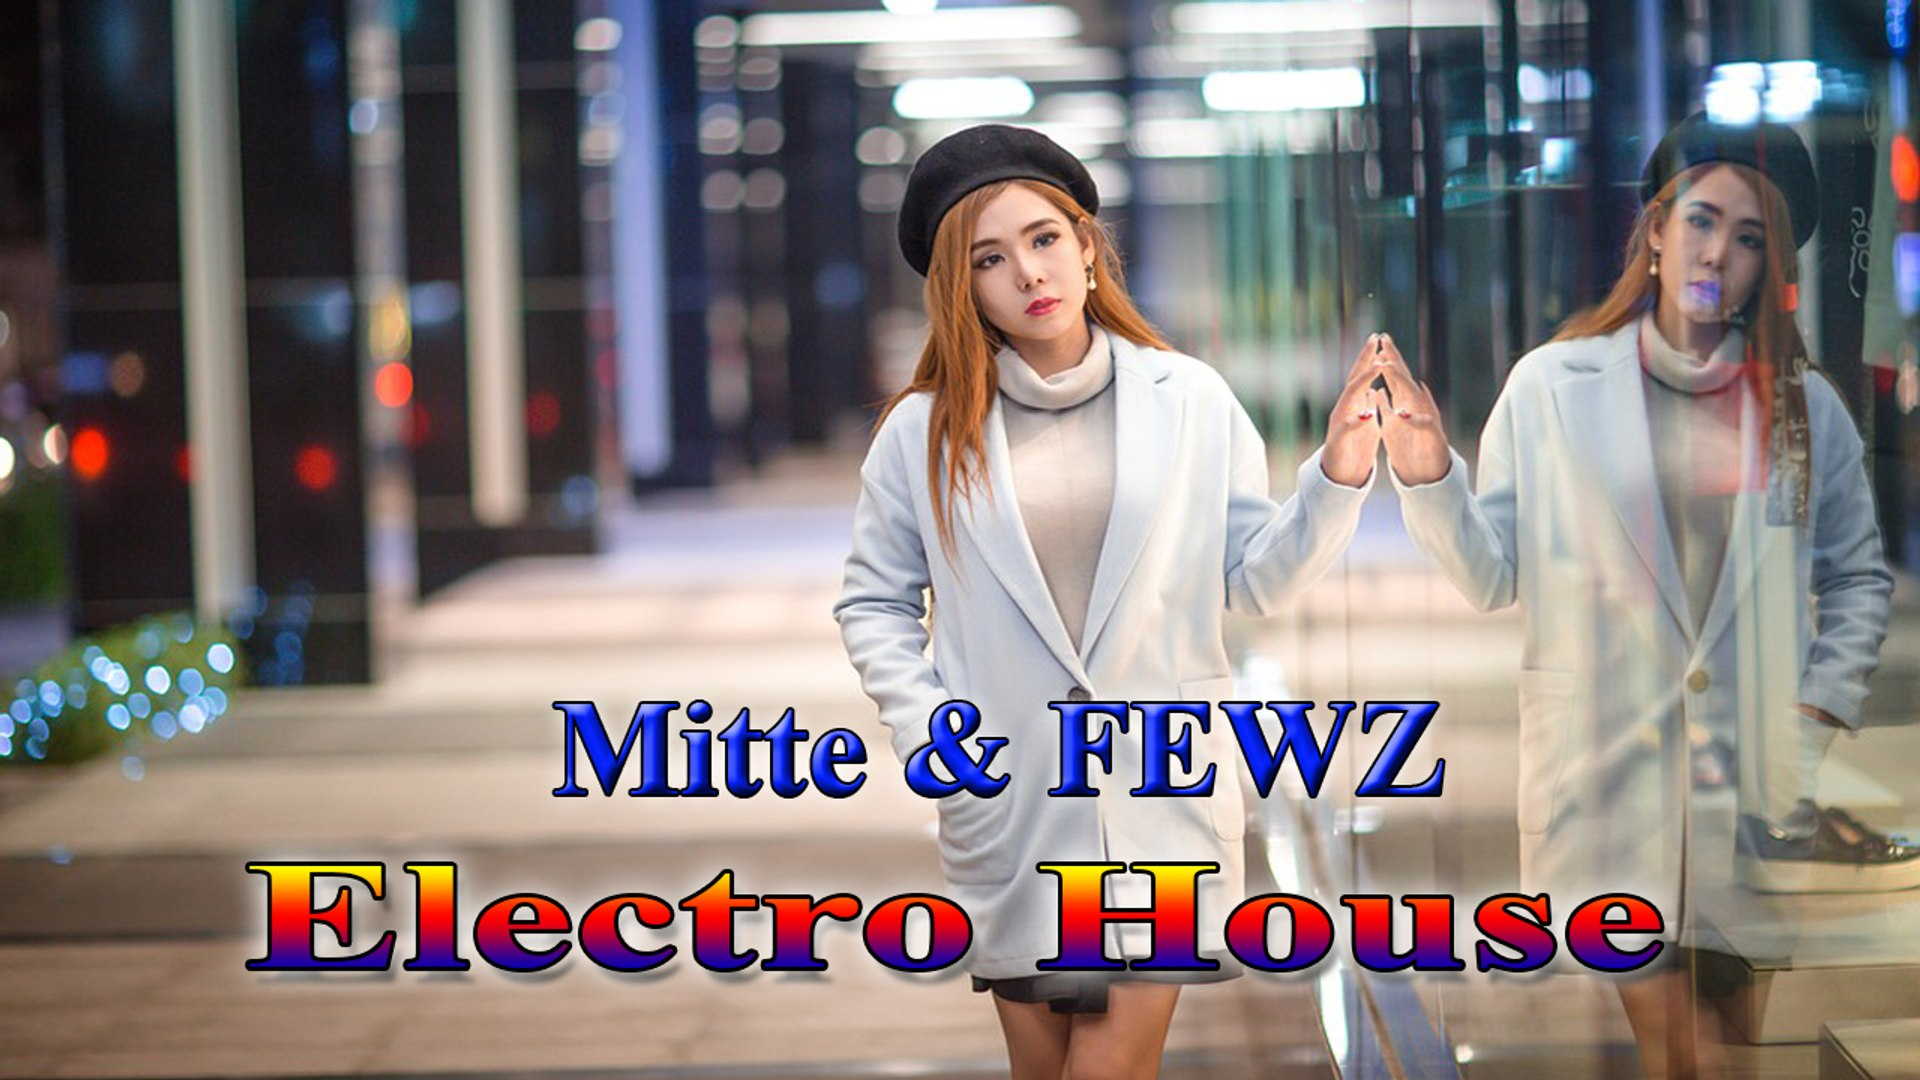 Entertainment - Remix Music [ Electro House] : Mitte - Candy ll FEWZ - Embers To Dust